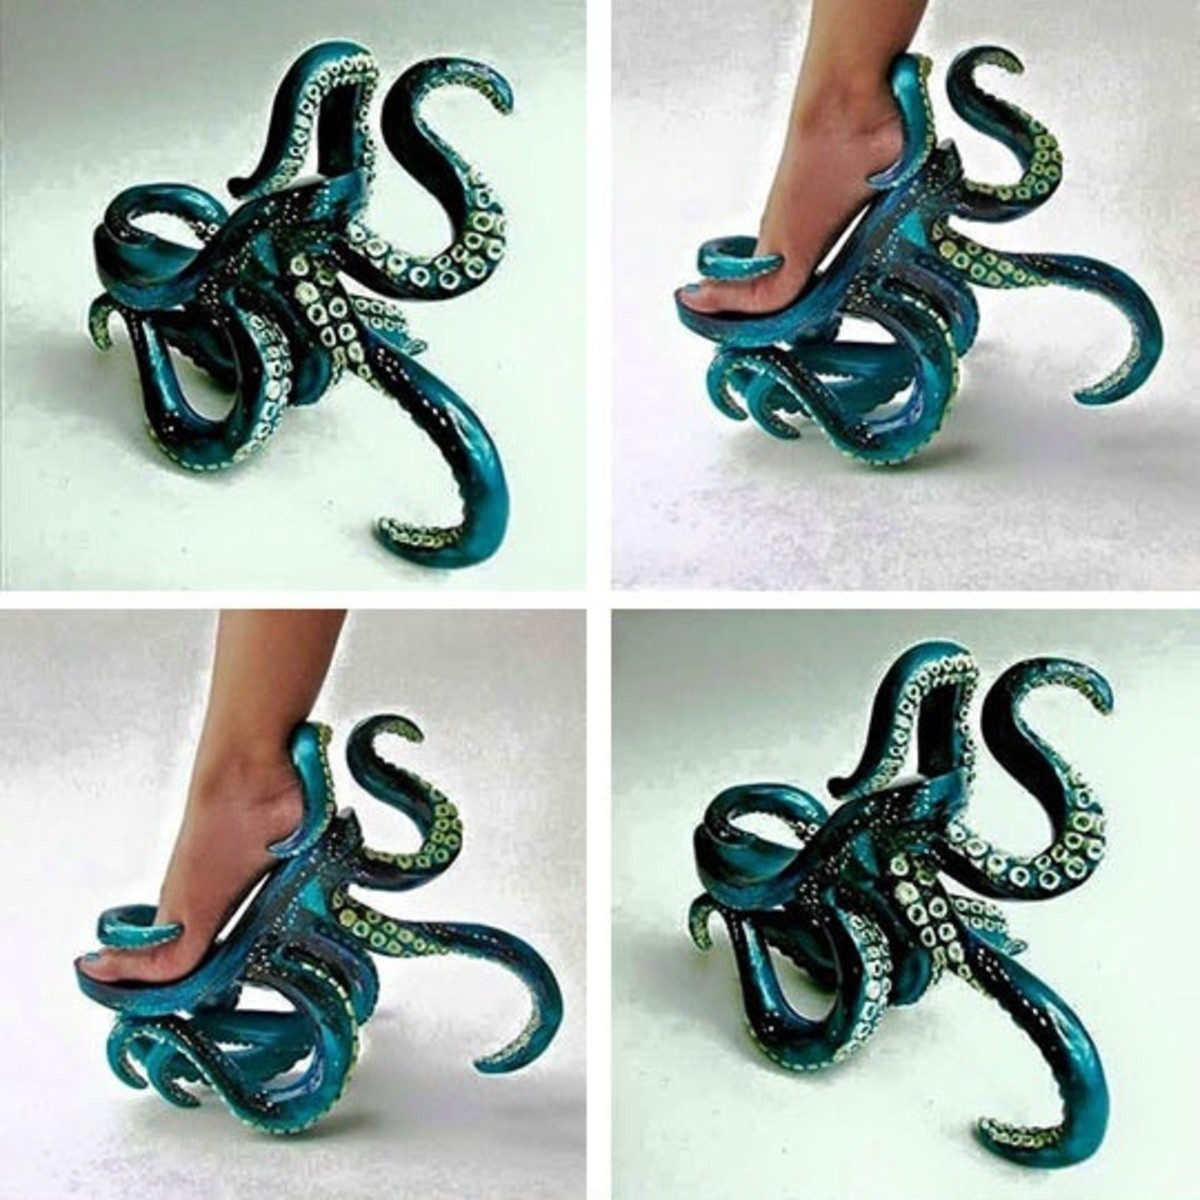 feet needed. .. That looks incredibly uncomfortable, one tentacle's even stabbing the side of her foot